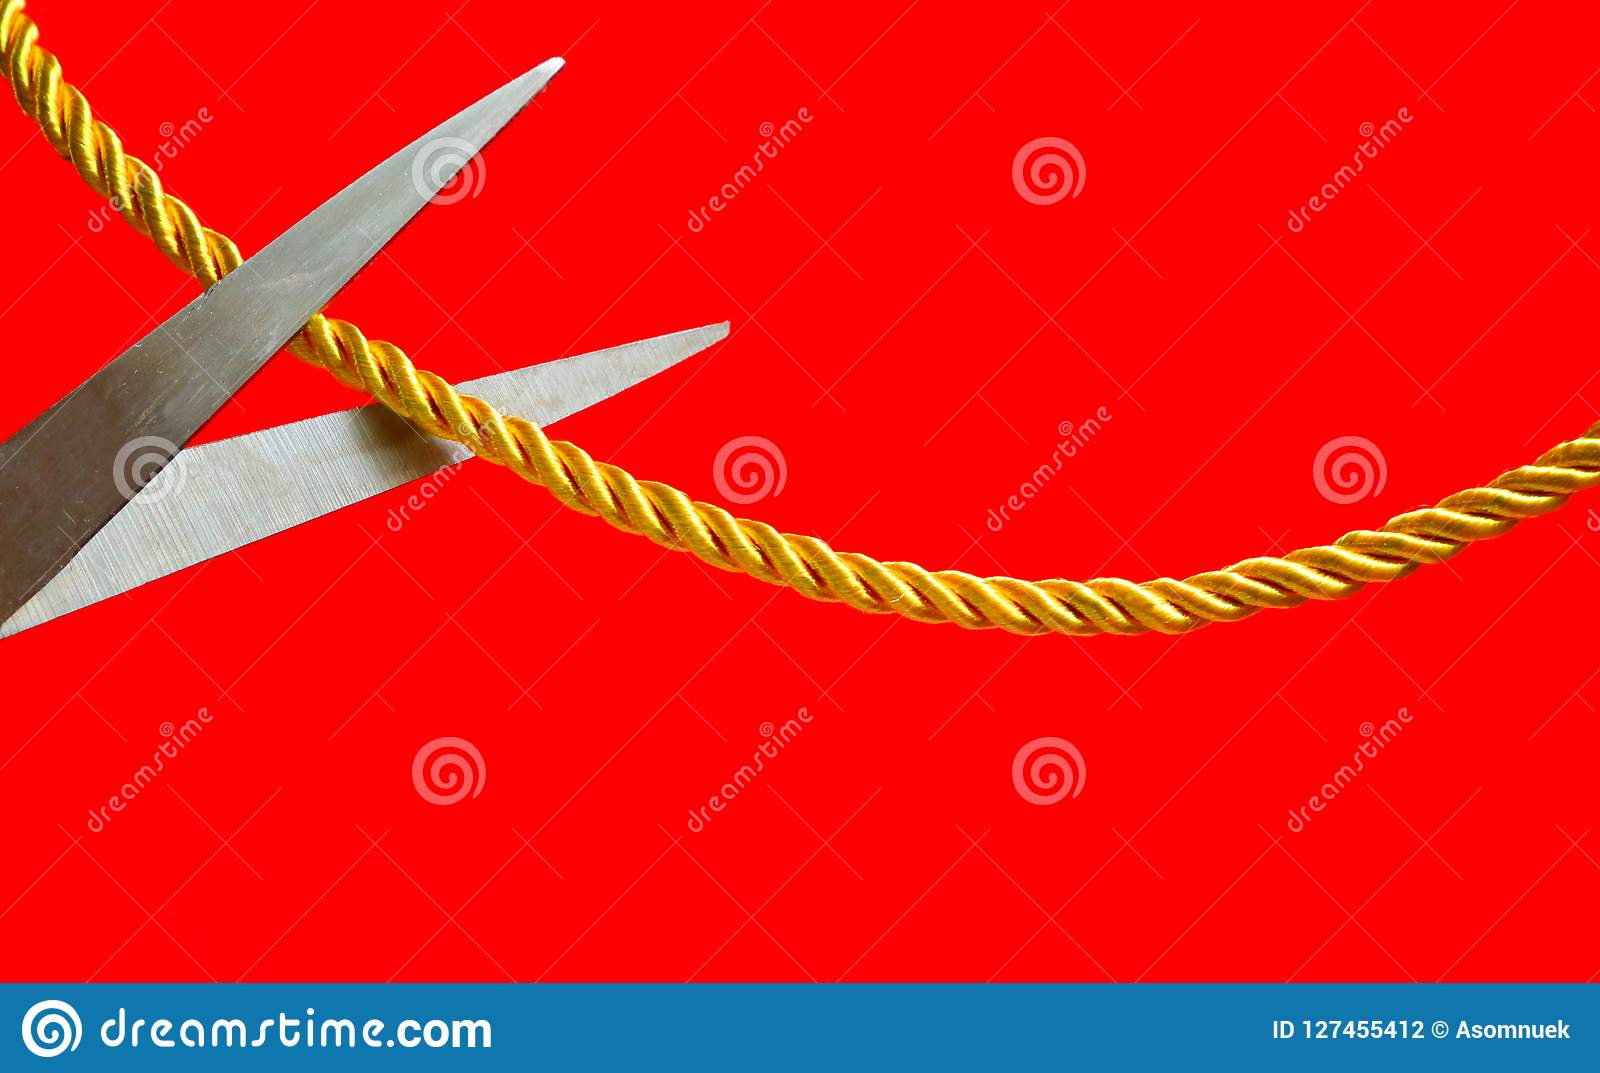 Sonnenstuhl Clipart Cut Off Relationship Stock Photo Image Of String Scissors